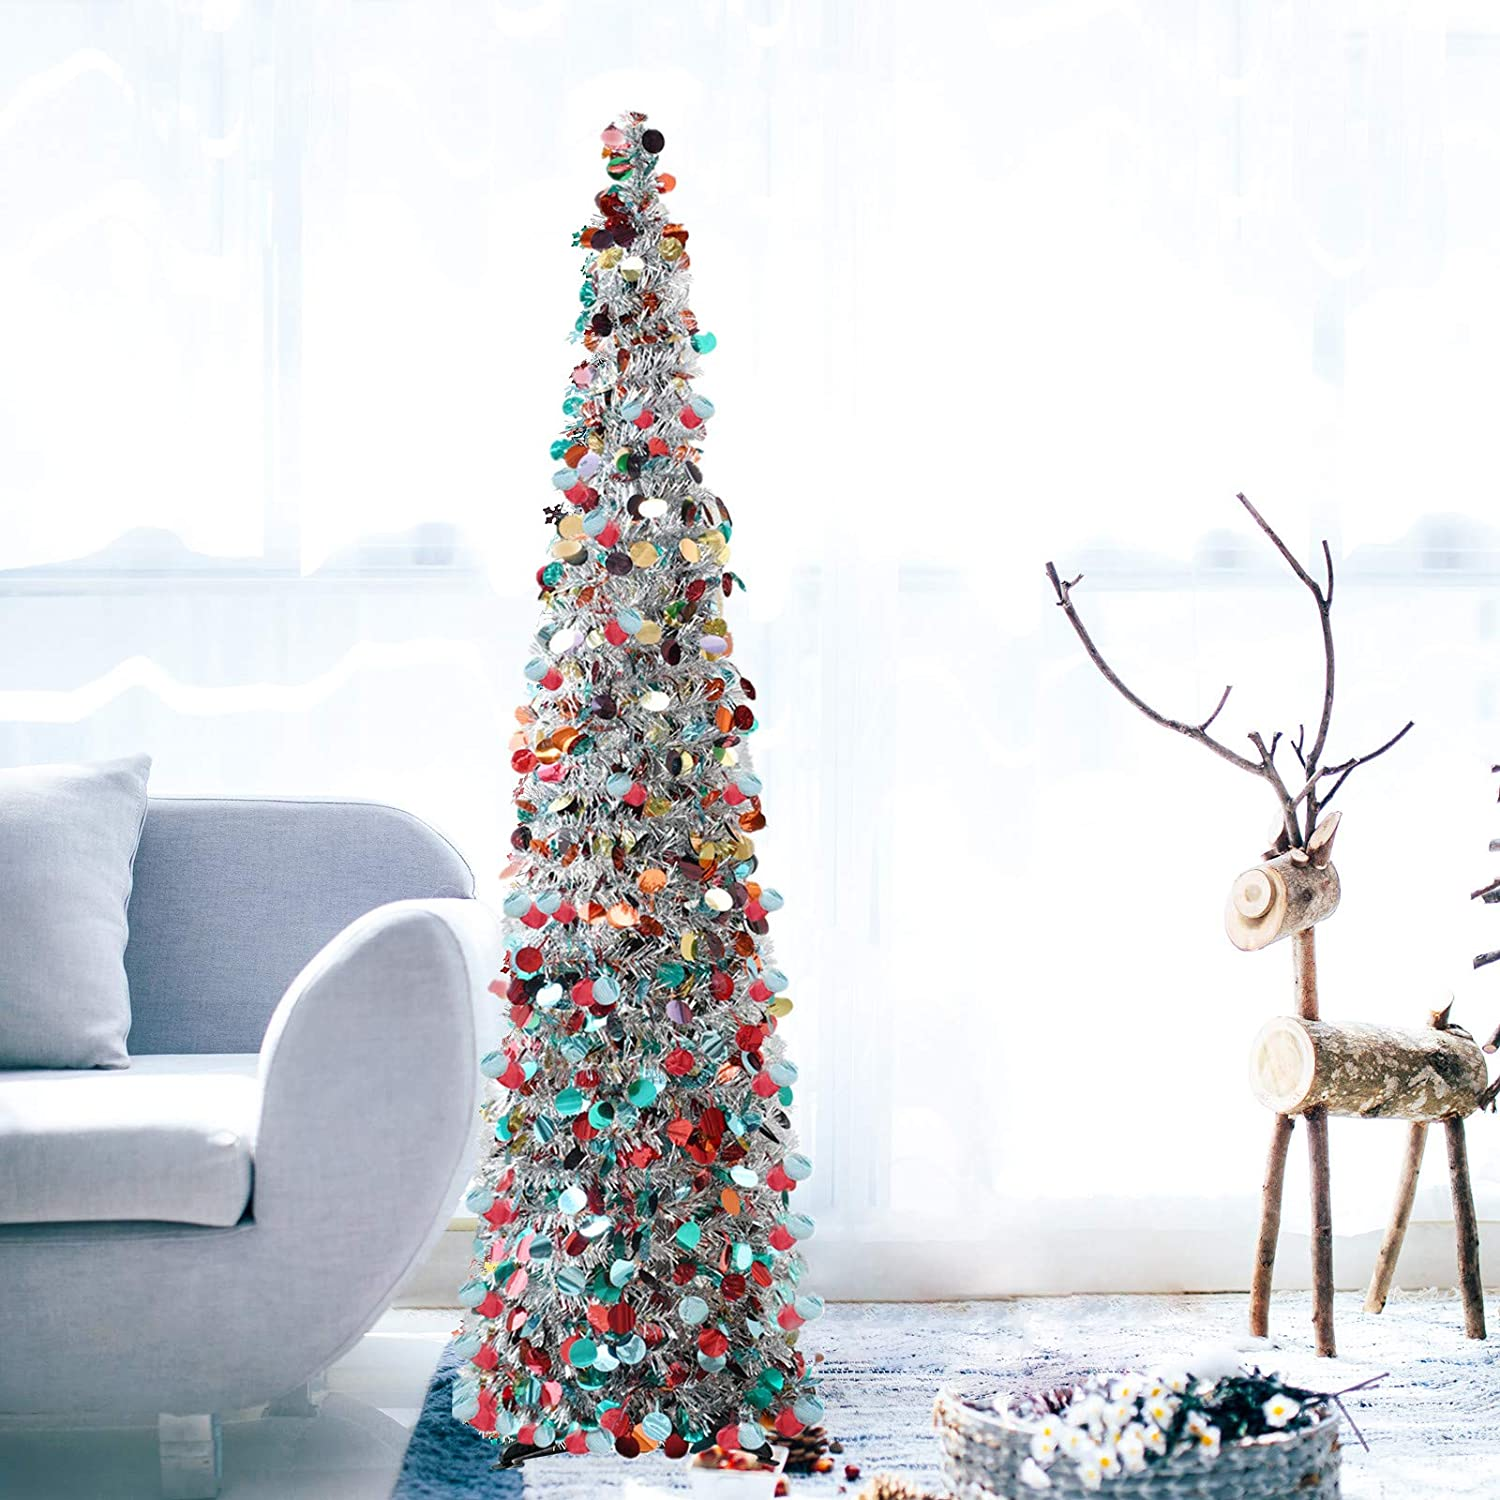 DOYOLLA Collapsible Artificial Pencil Christmas Tree, Pop Up Tinsel Coastal Xmas Tree for Home & Party & Office & Fireplace Holiday Decorations (Silver, 5ft)